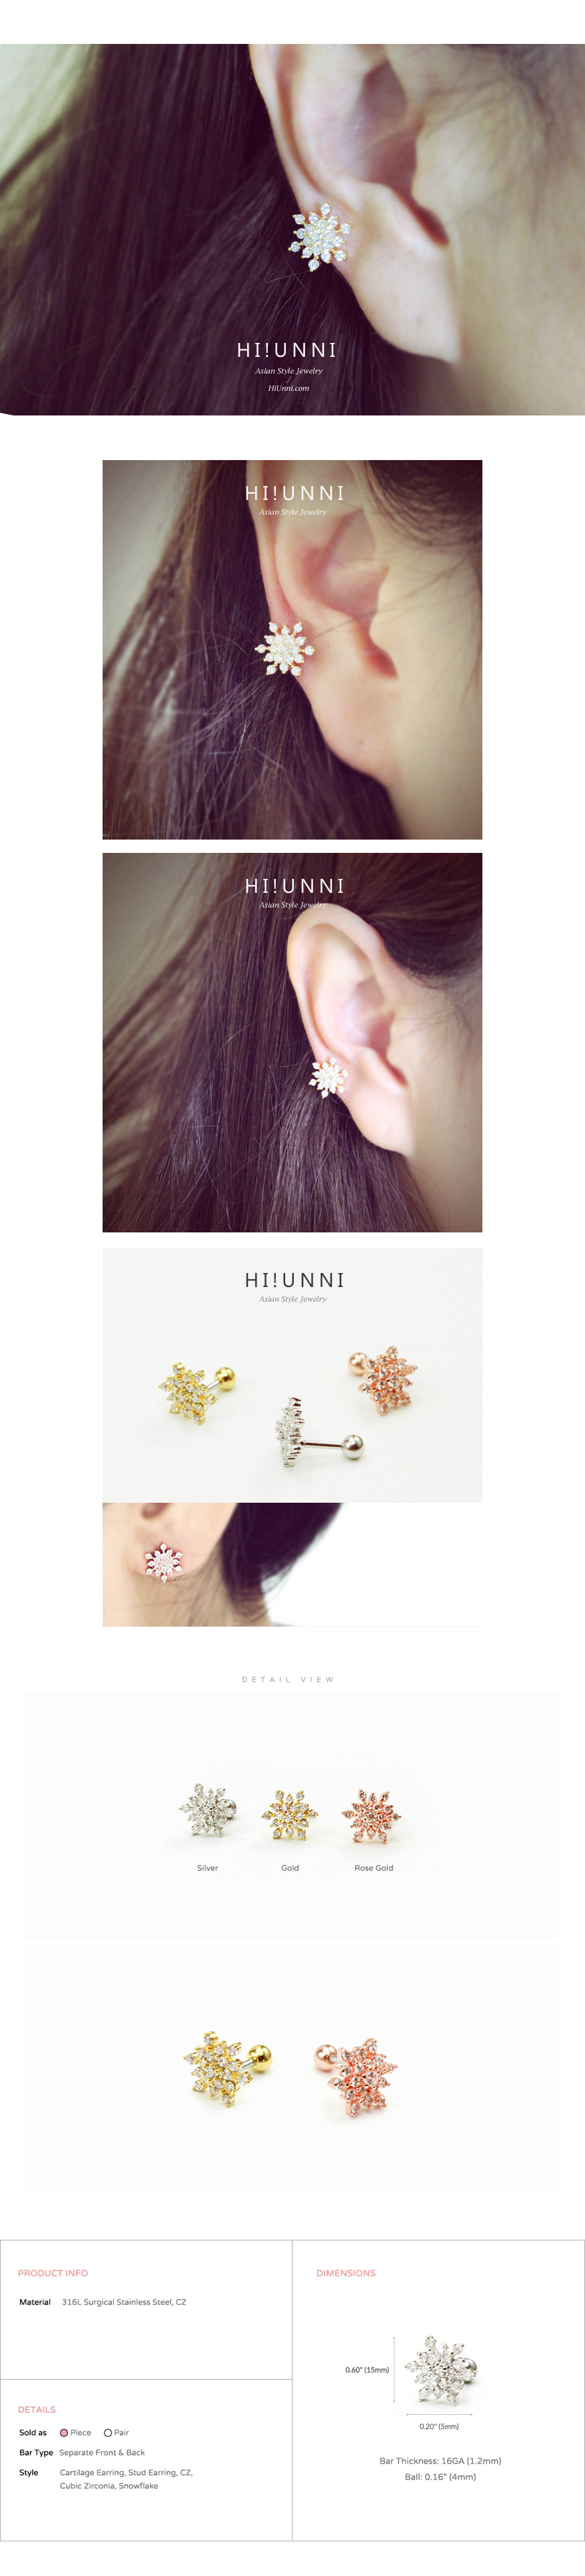 ear_studs_piercing_cartilage_earrings_16g_316l_surgical_stainless_steel_jewelry_barbell_rose_gold_helix_conch_snow_flake_4